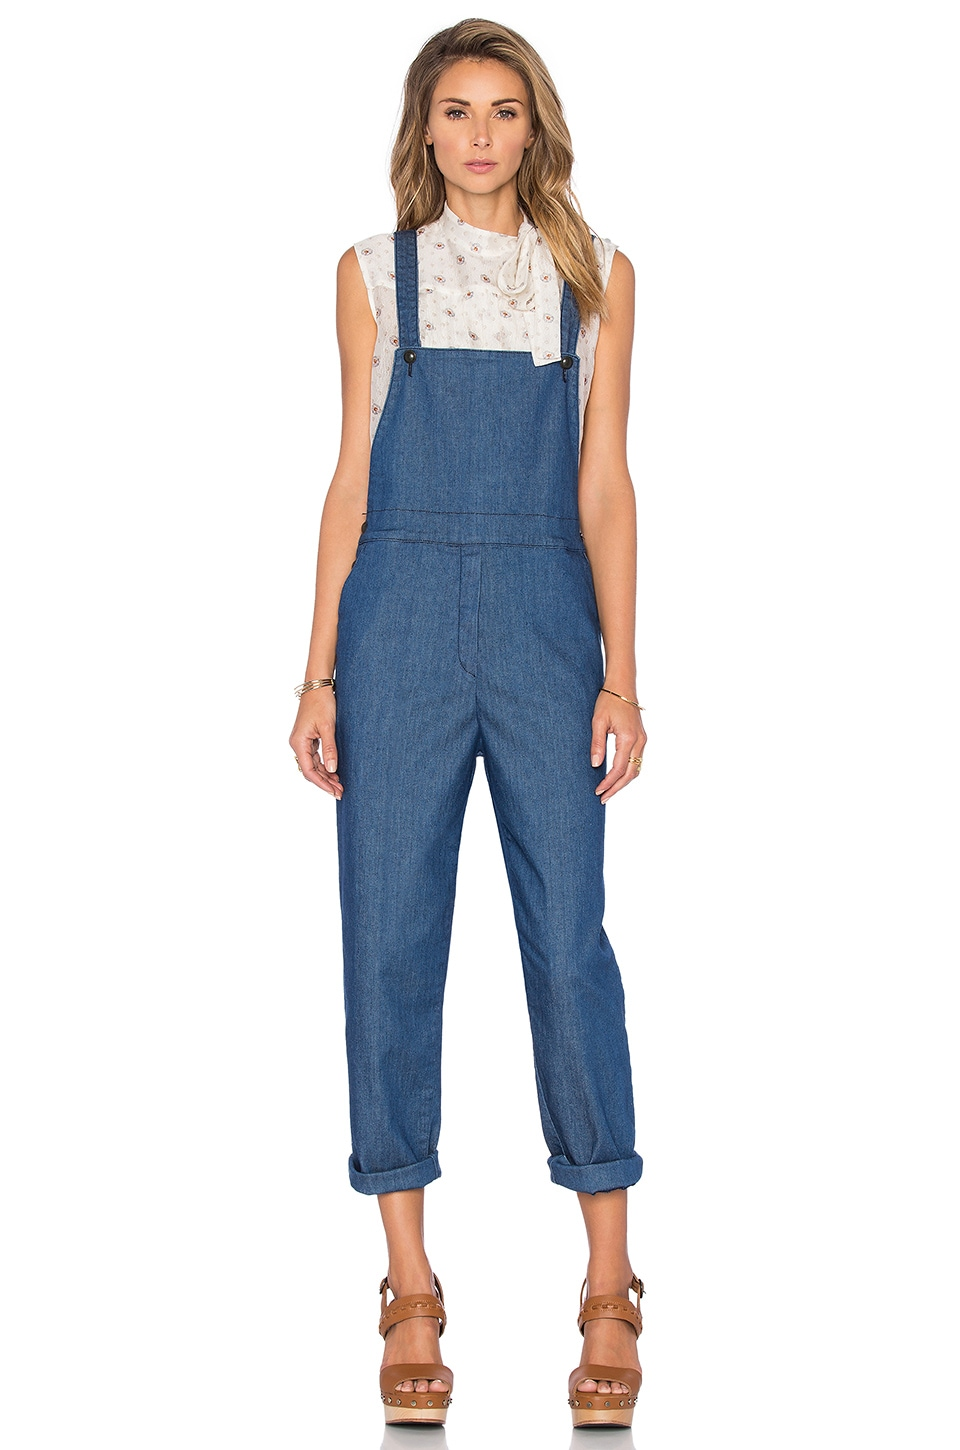 Denim Overall by cacharel